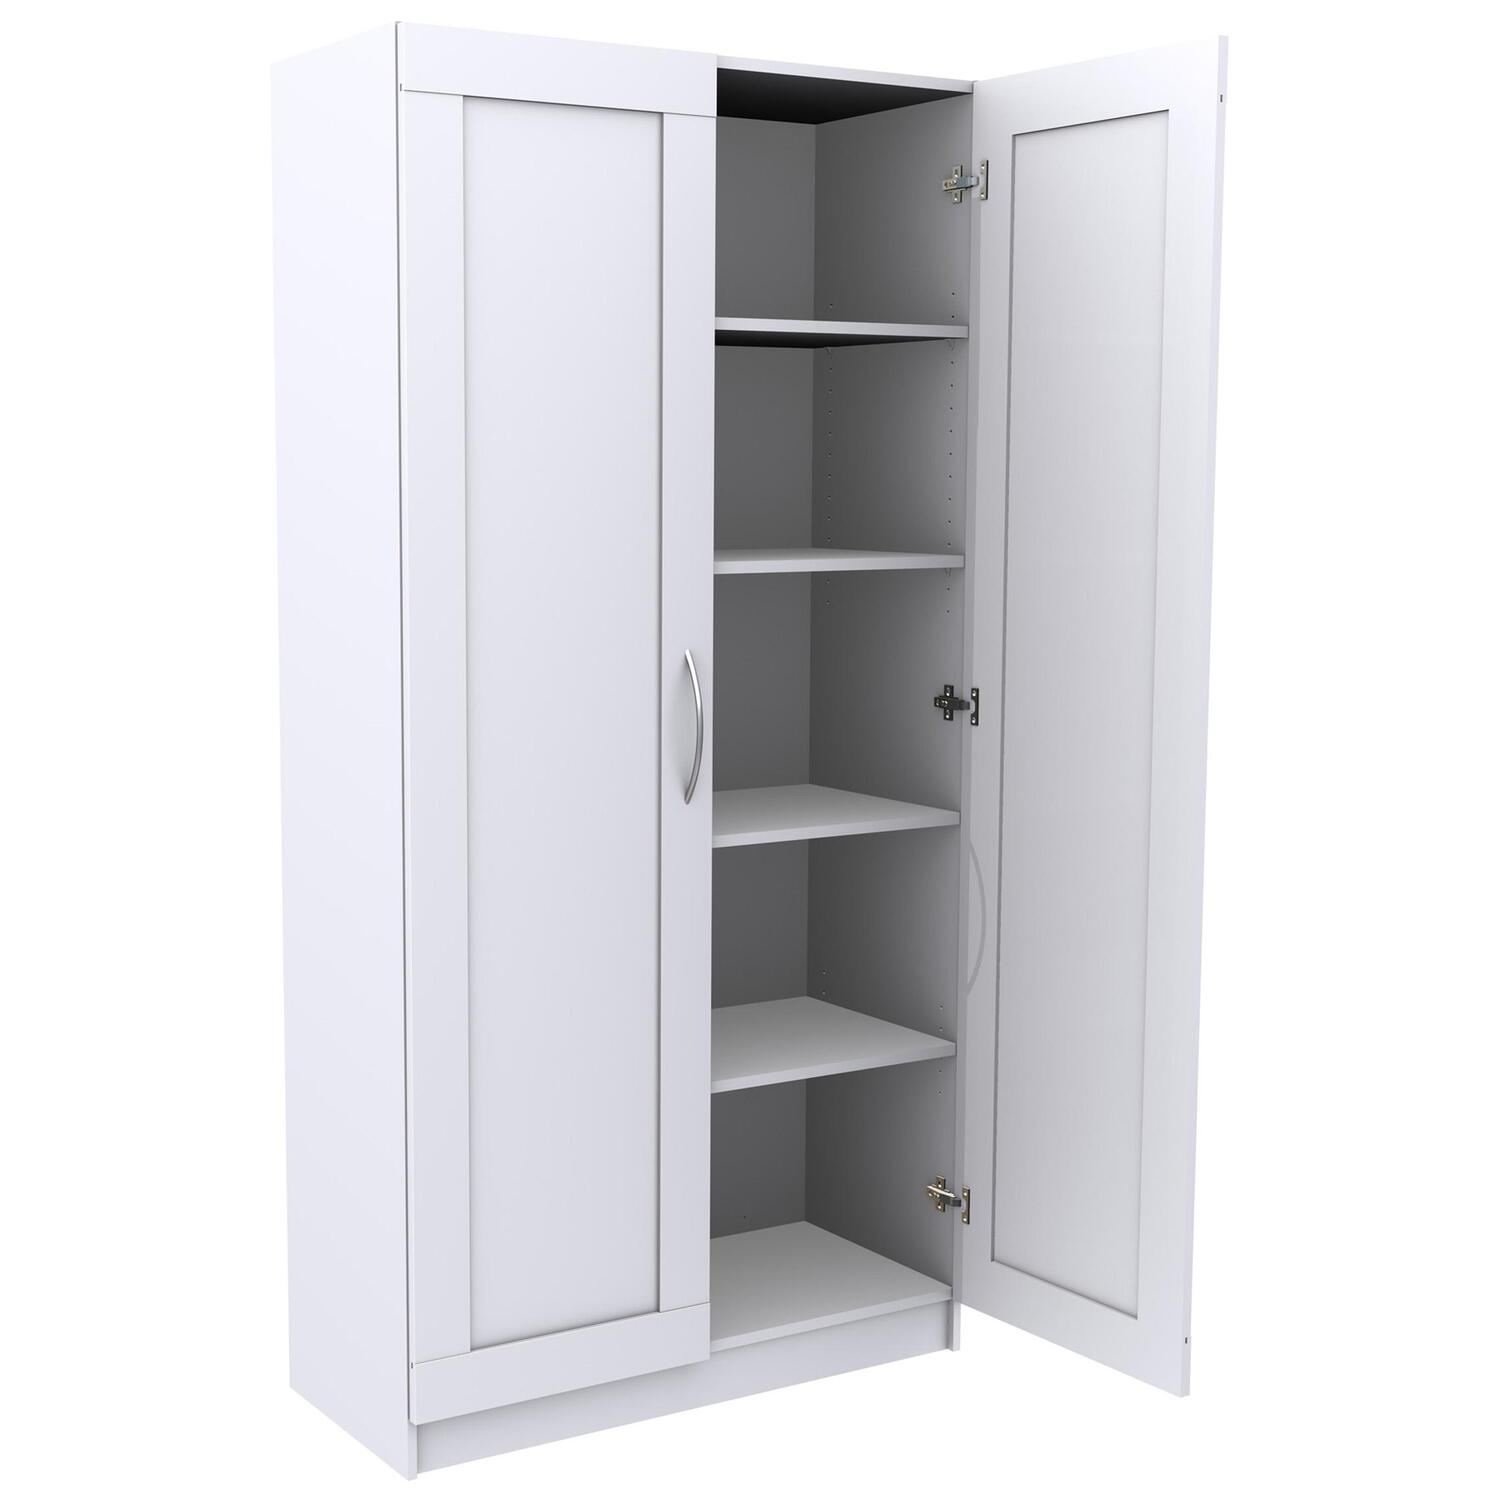 Delicieux 5 Shelf Wide Framed Door Storage Cabinet